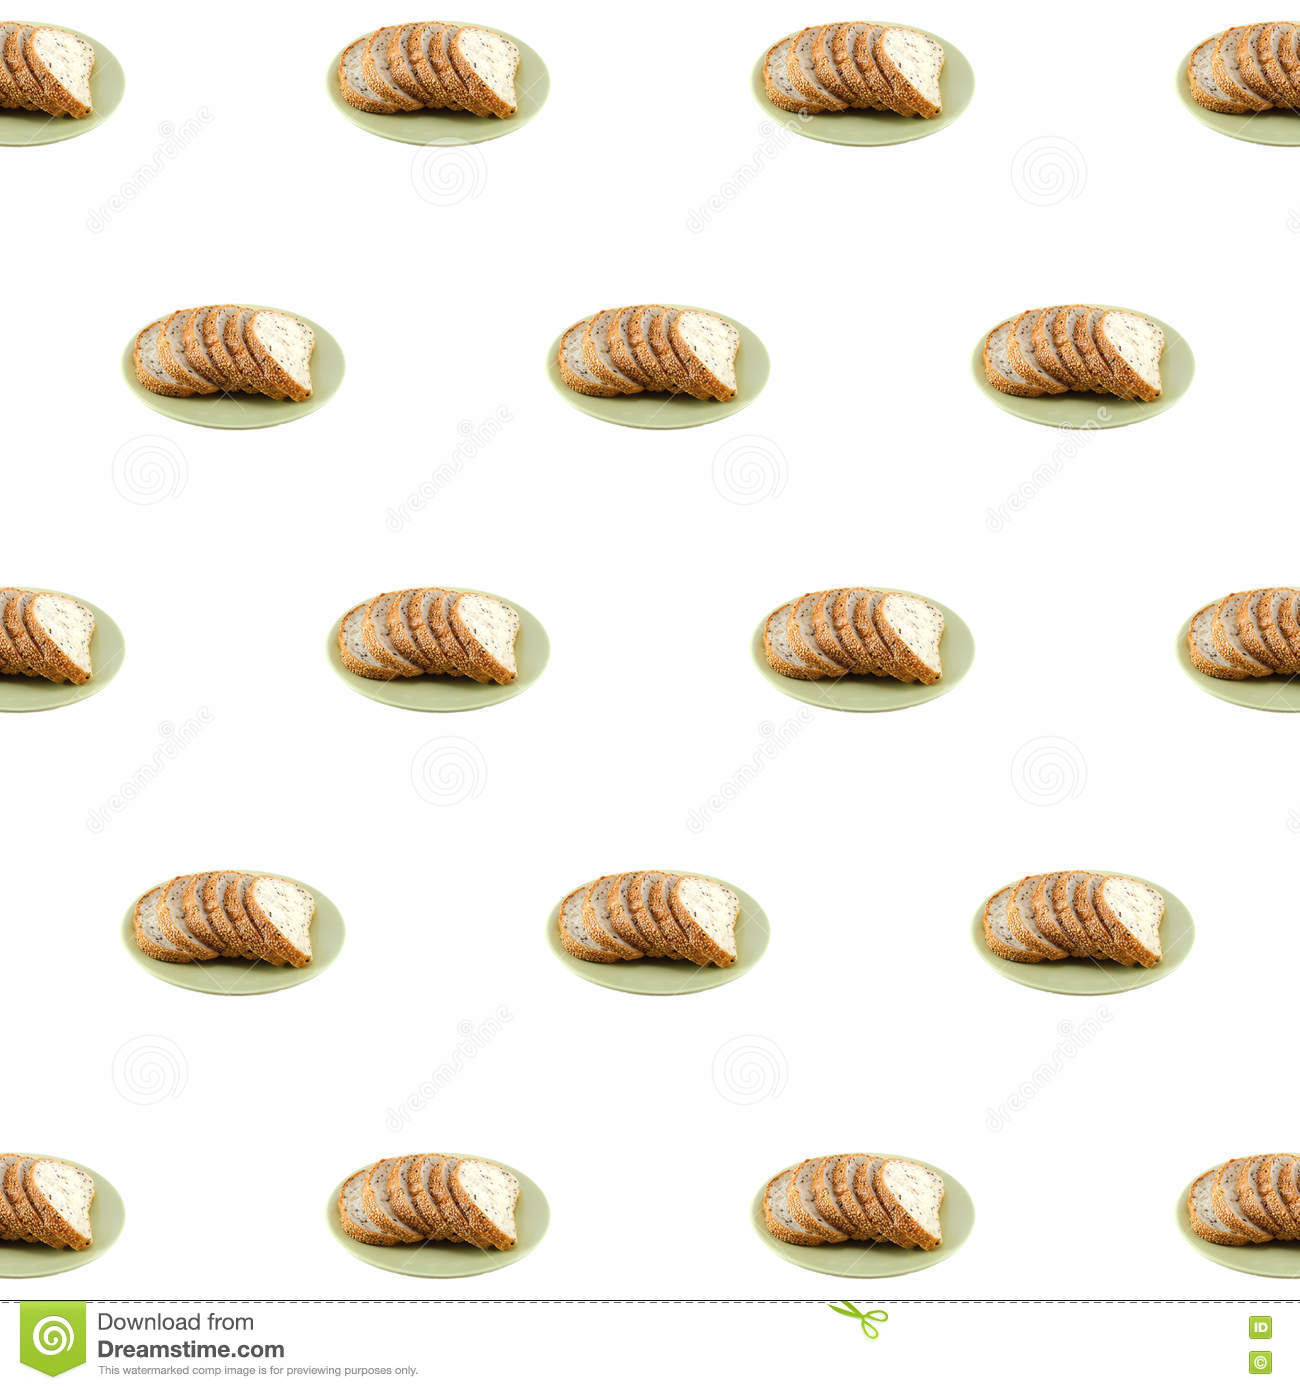 Sliced Sesame Bread On White Background